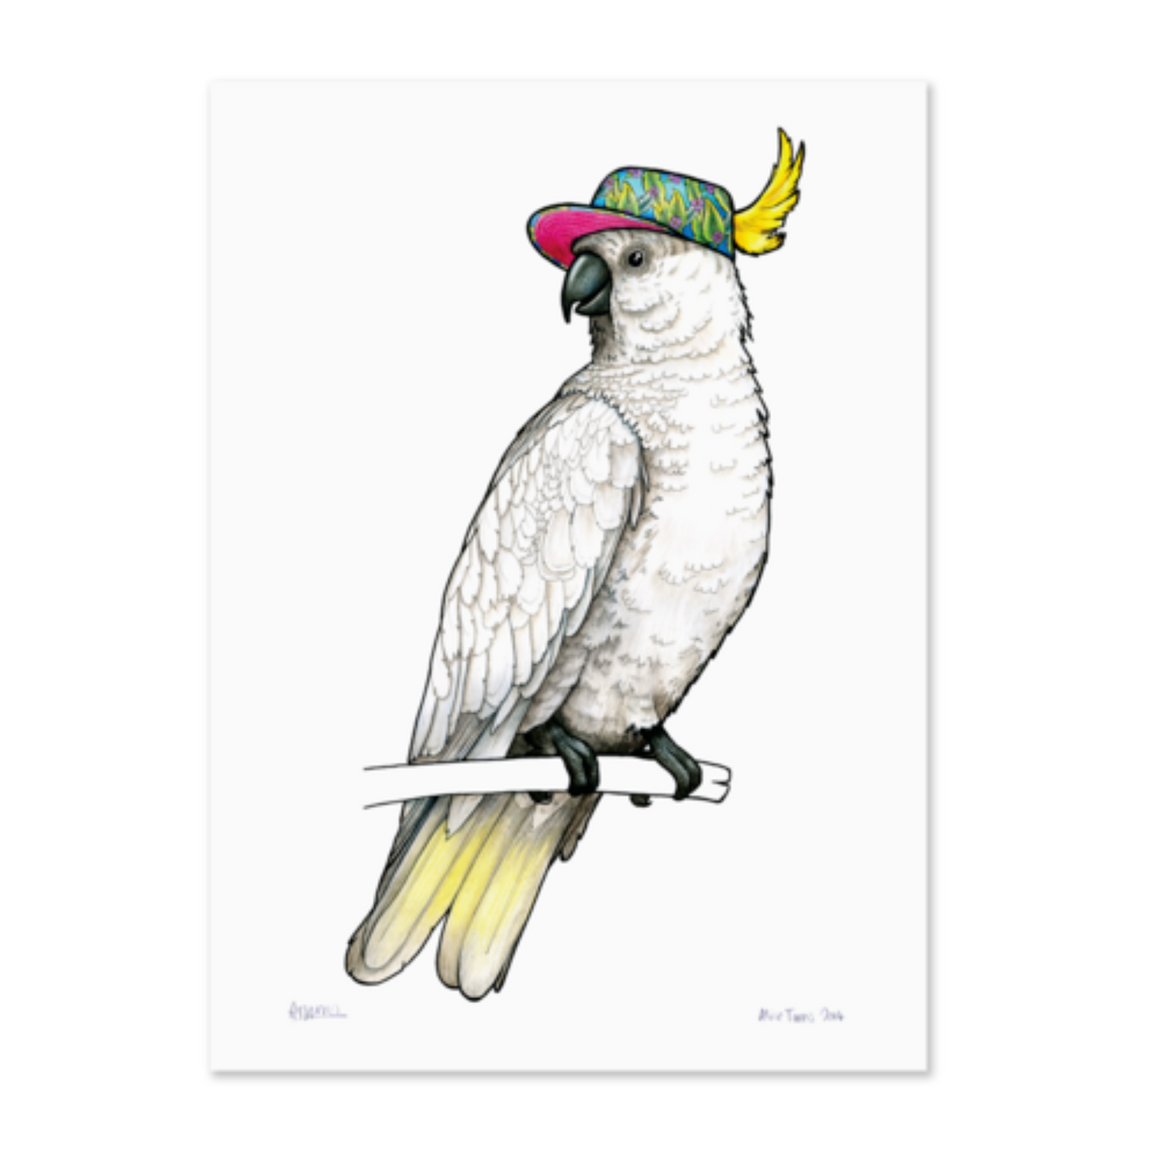 Birds In Hats Print - Sulphur Crested Cockatoo in a Tropical Visor